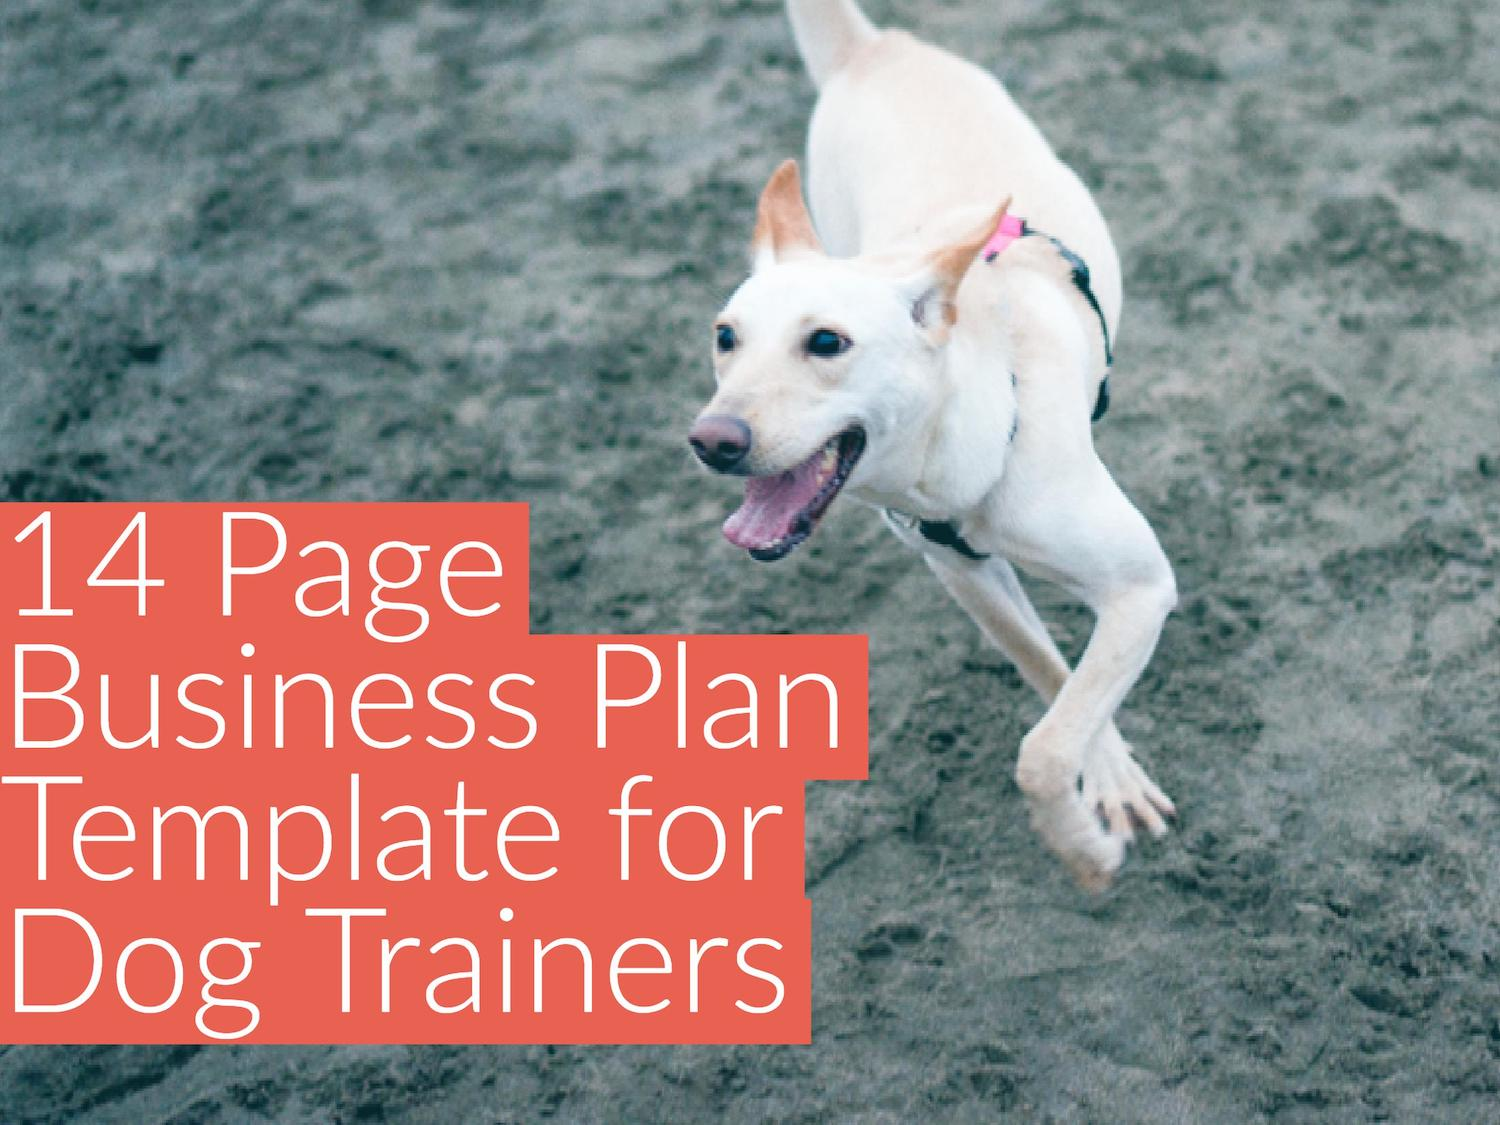 Templates - The Modern Dog Trainer